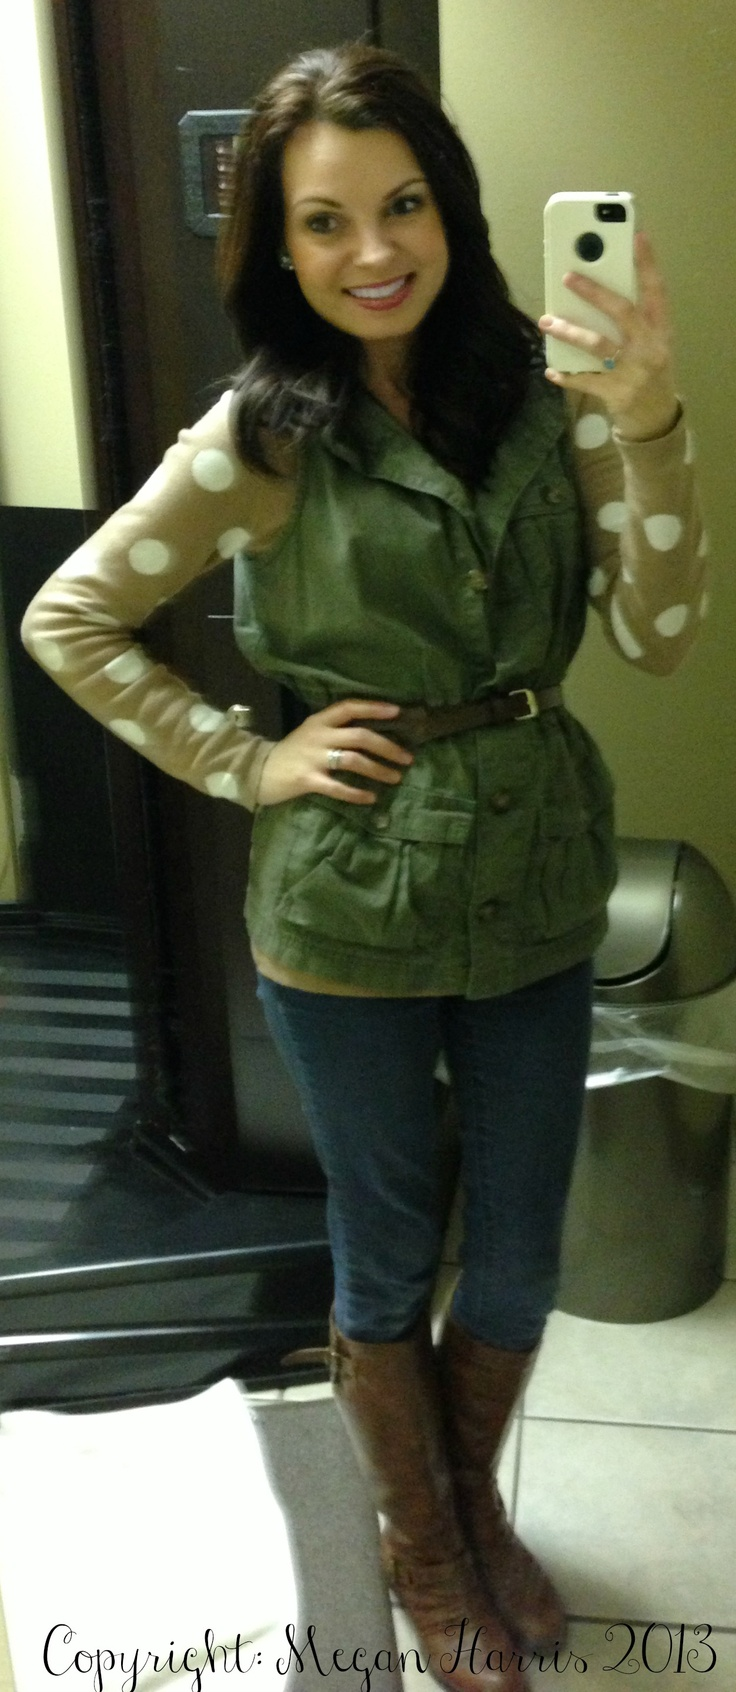 Sweater: Old Navy, Vest: Old Navy, Belt: HM, Jeans: Forever 21 and Boots: Payless #beautybrawler